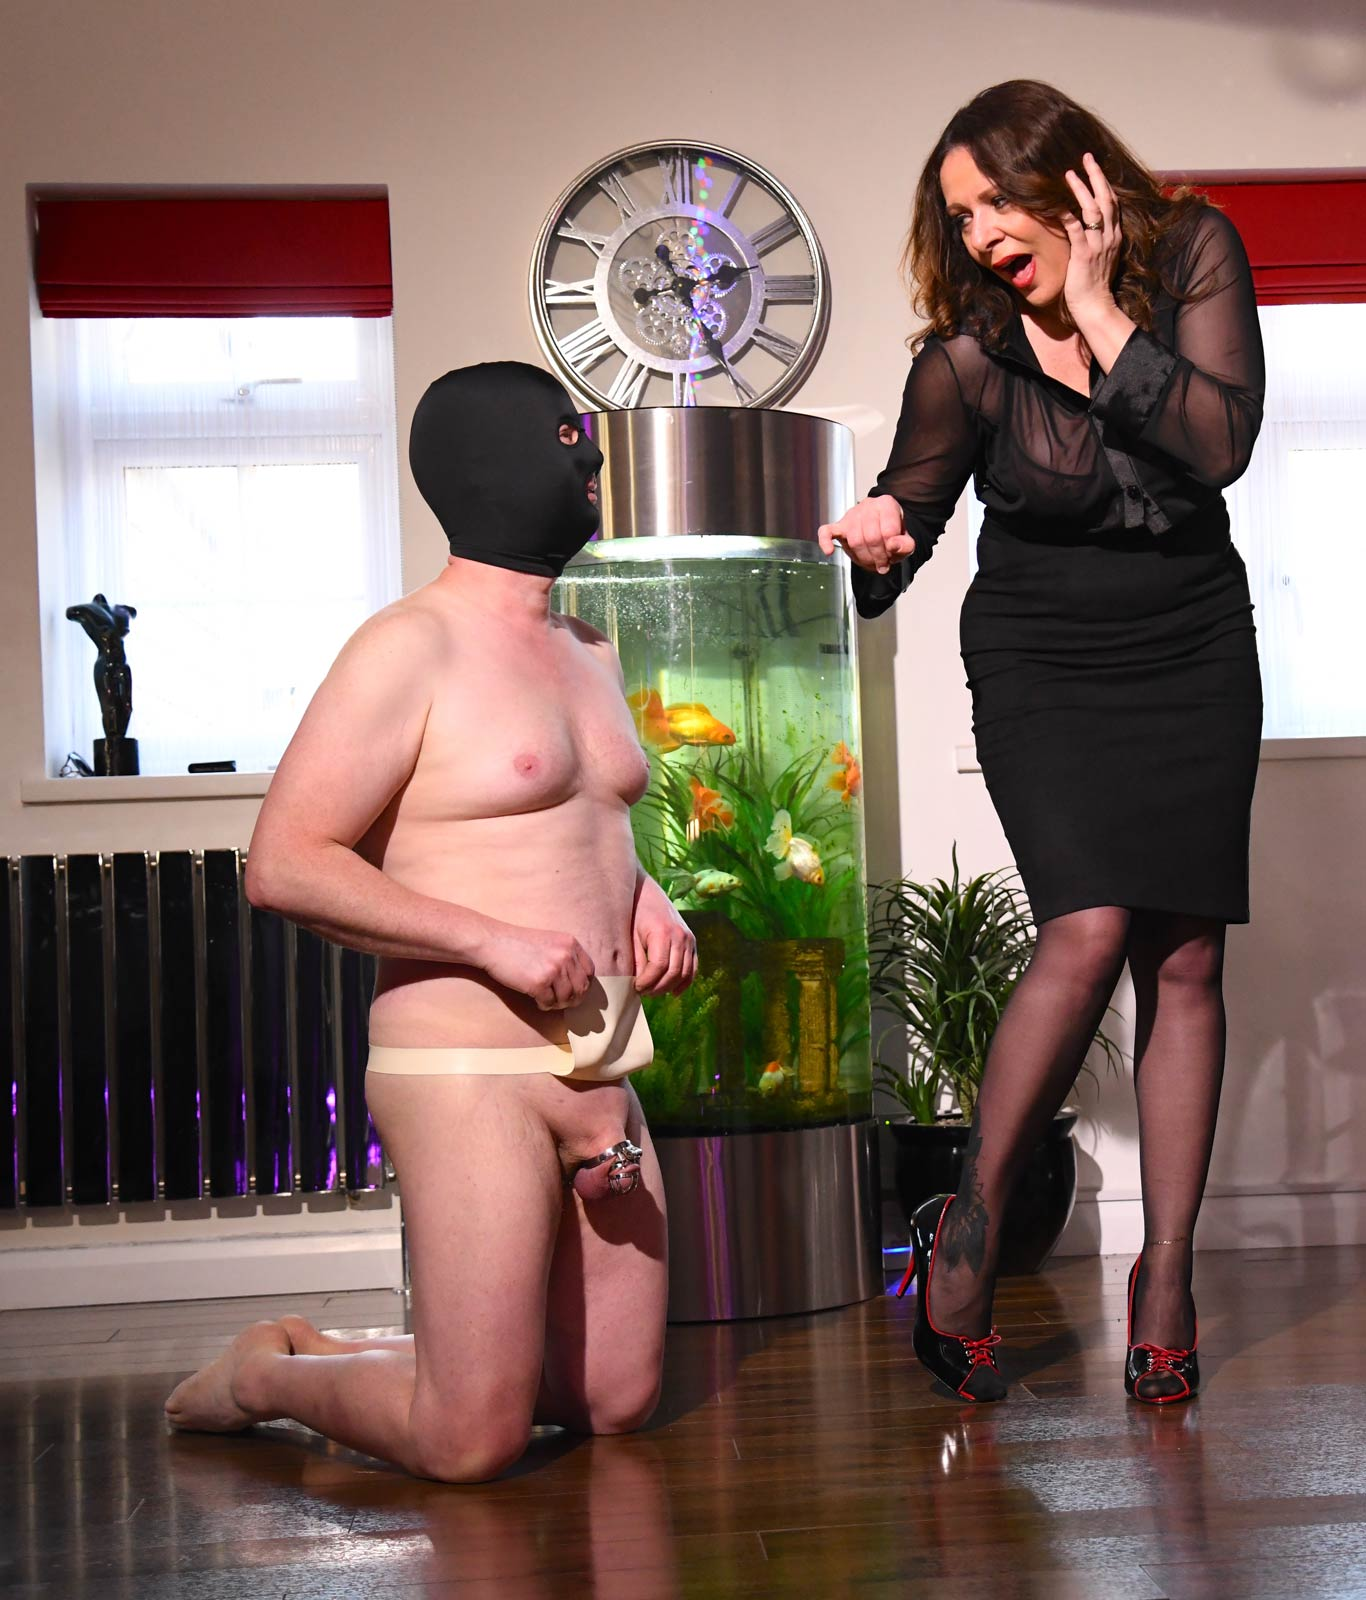 Clothed Female and naked male session with MissDeLaVere